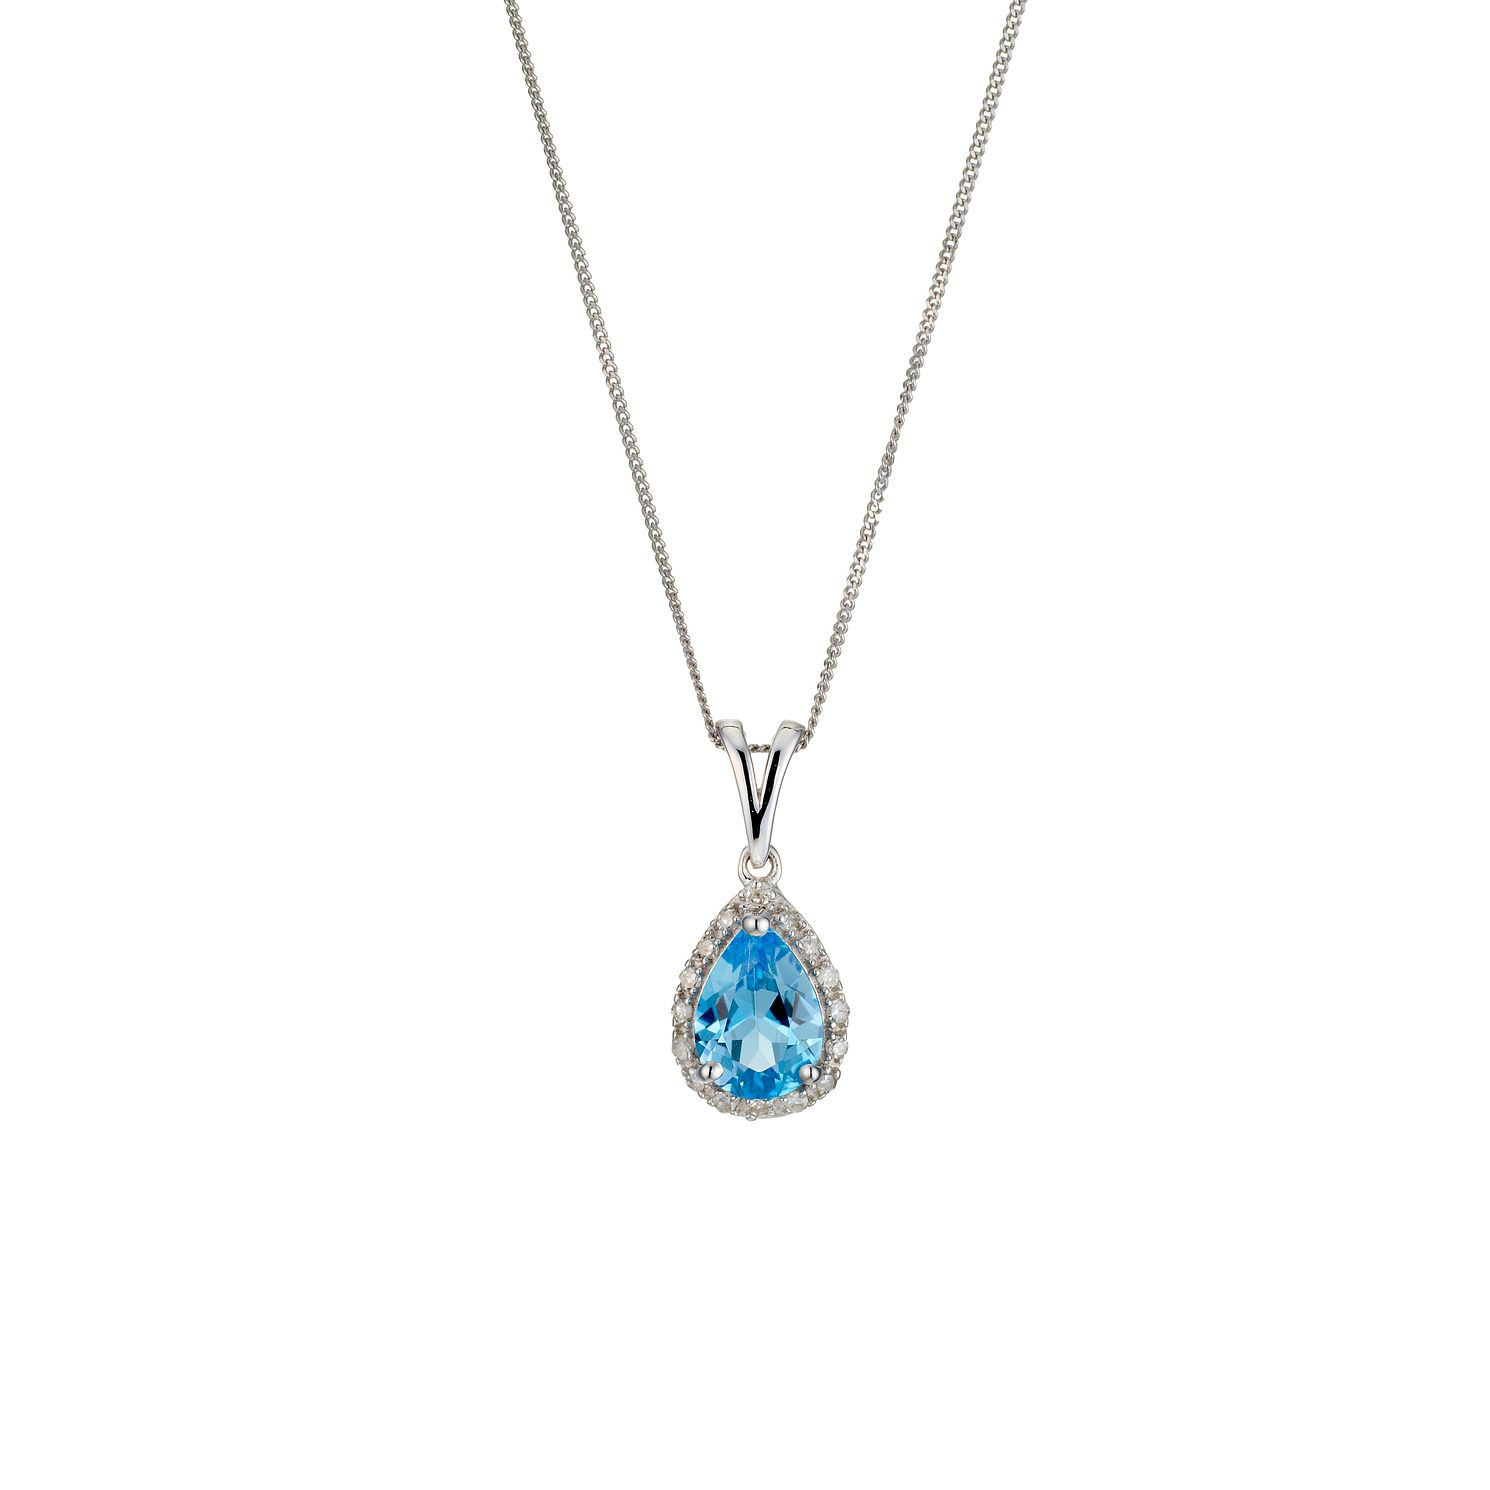 9ct White Gold Blue Topaz & Diamond Pendant Necklace - Product number 8929041